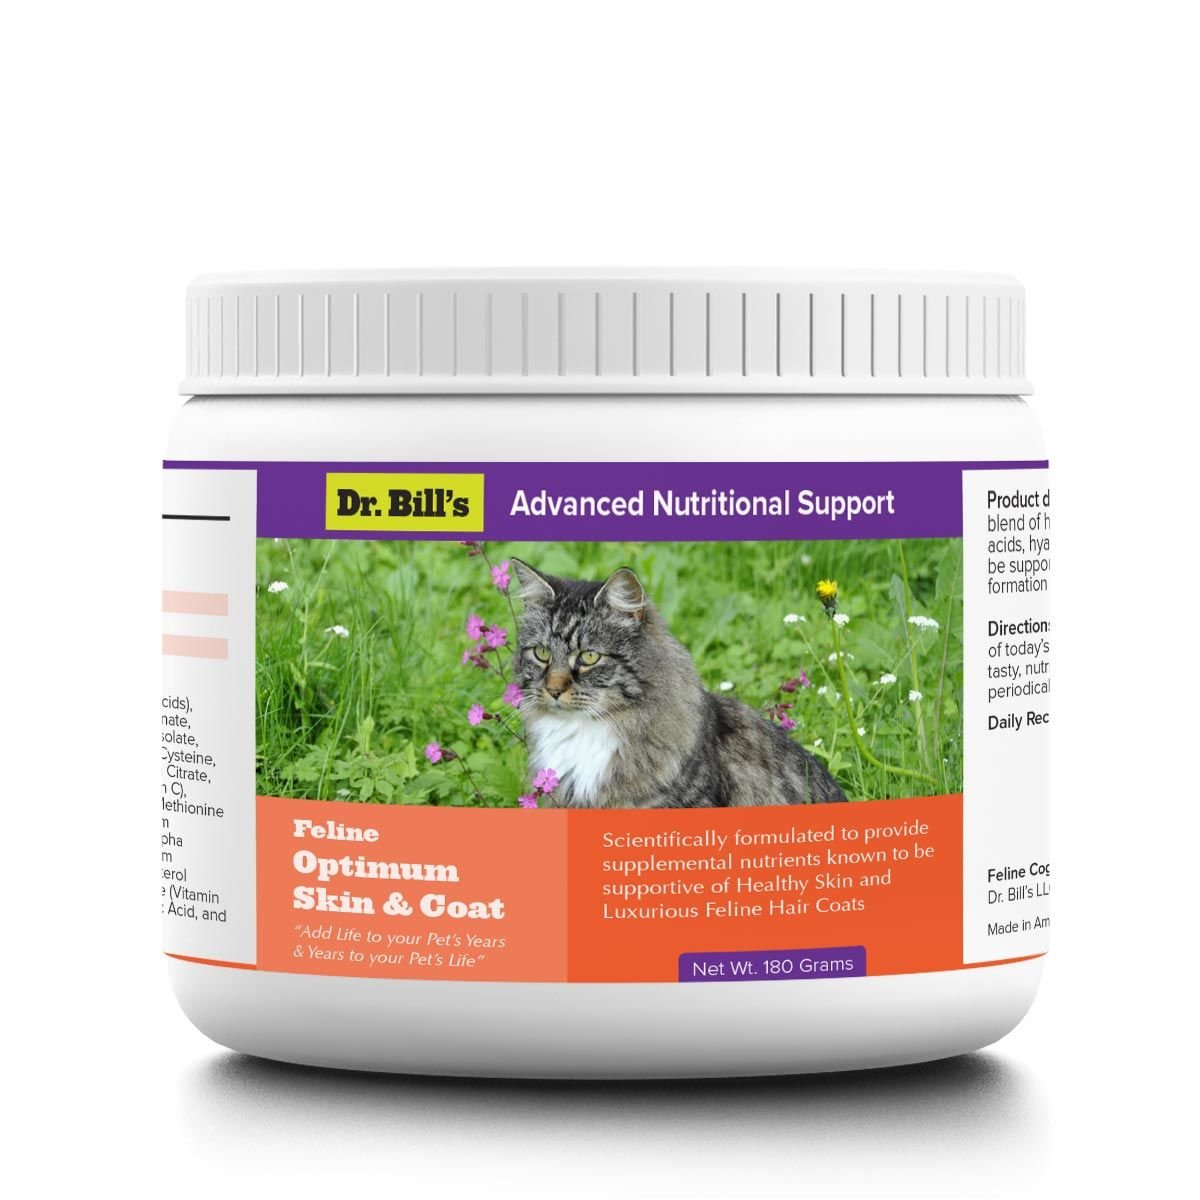 Dr. Bill's Feline Optimum Skin & Coat| Pet Supplement for Cats| Reduced Shedding | Reduced Itchy Hot Spots | Includes Omega-3, Pacific Kelp, Collagen Type I & III, Biotin, and Vitamin B12 | 180 Grams by Dr. Bill's